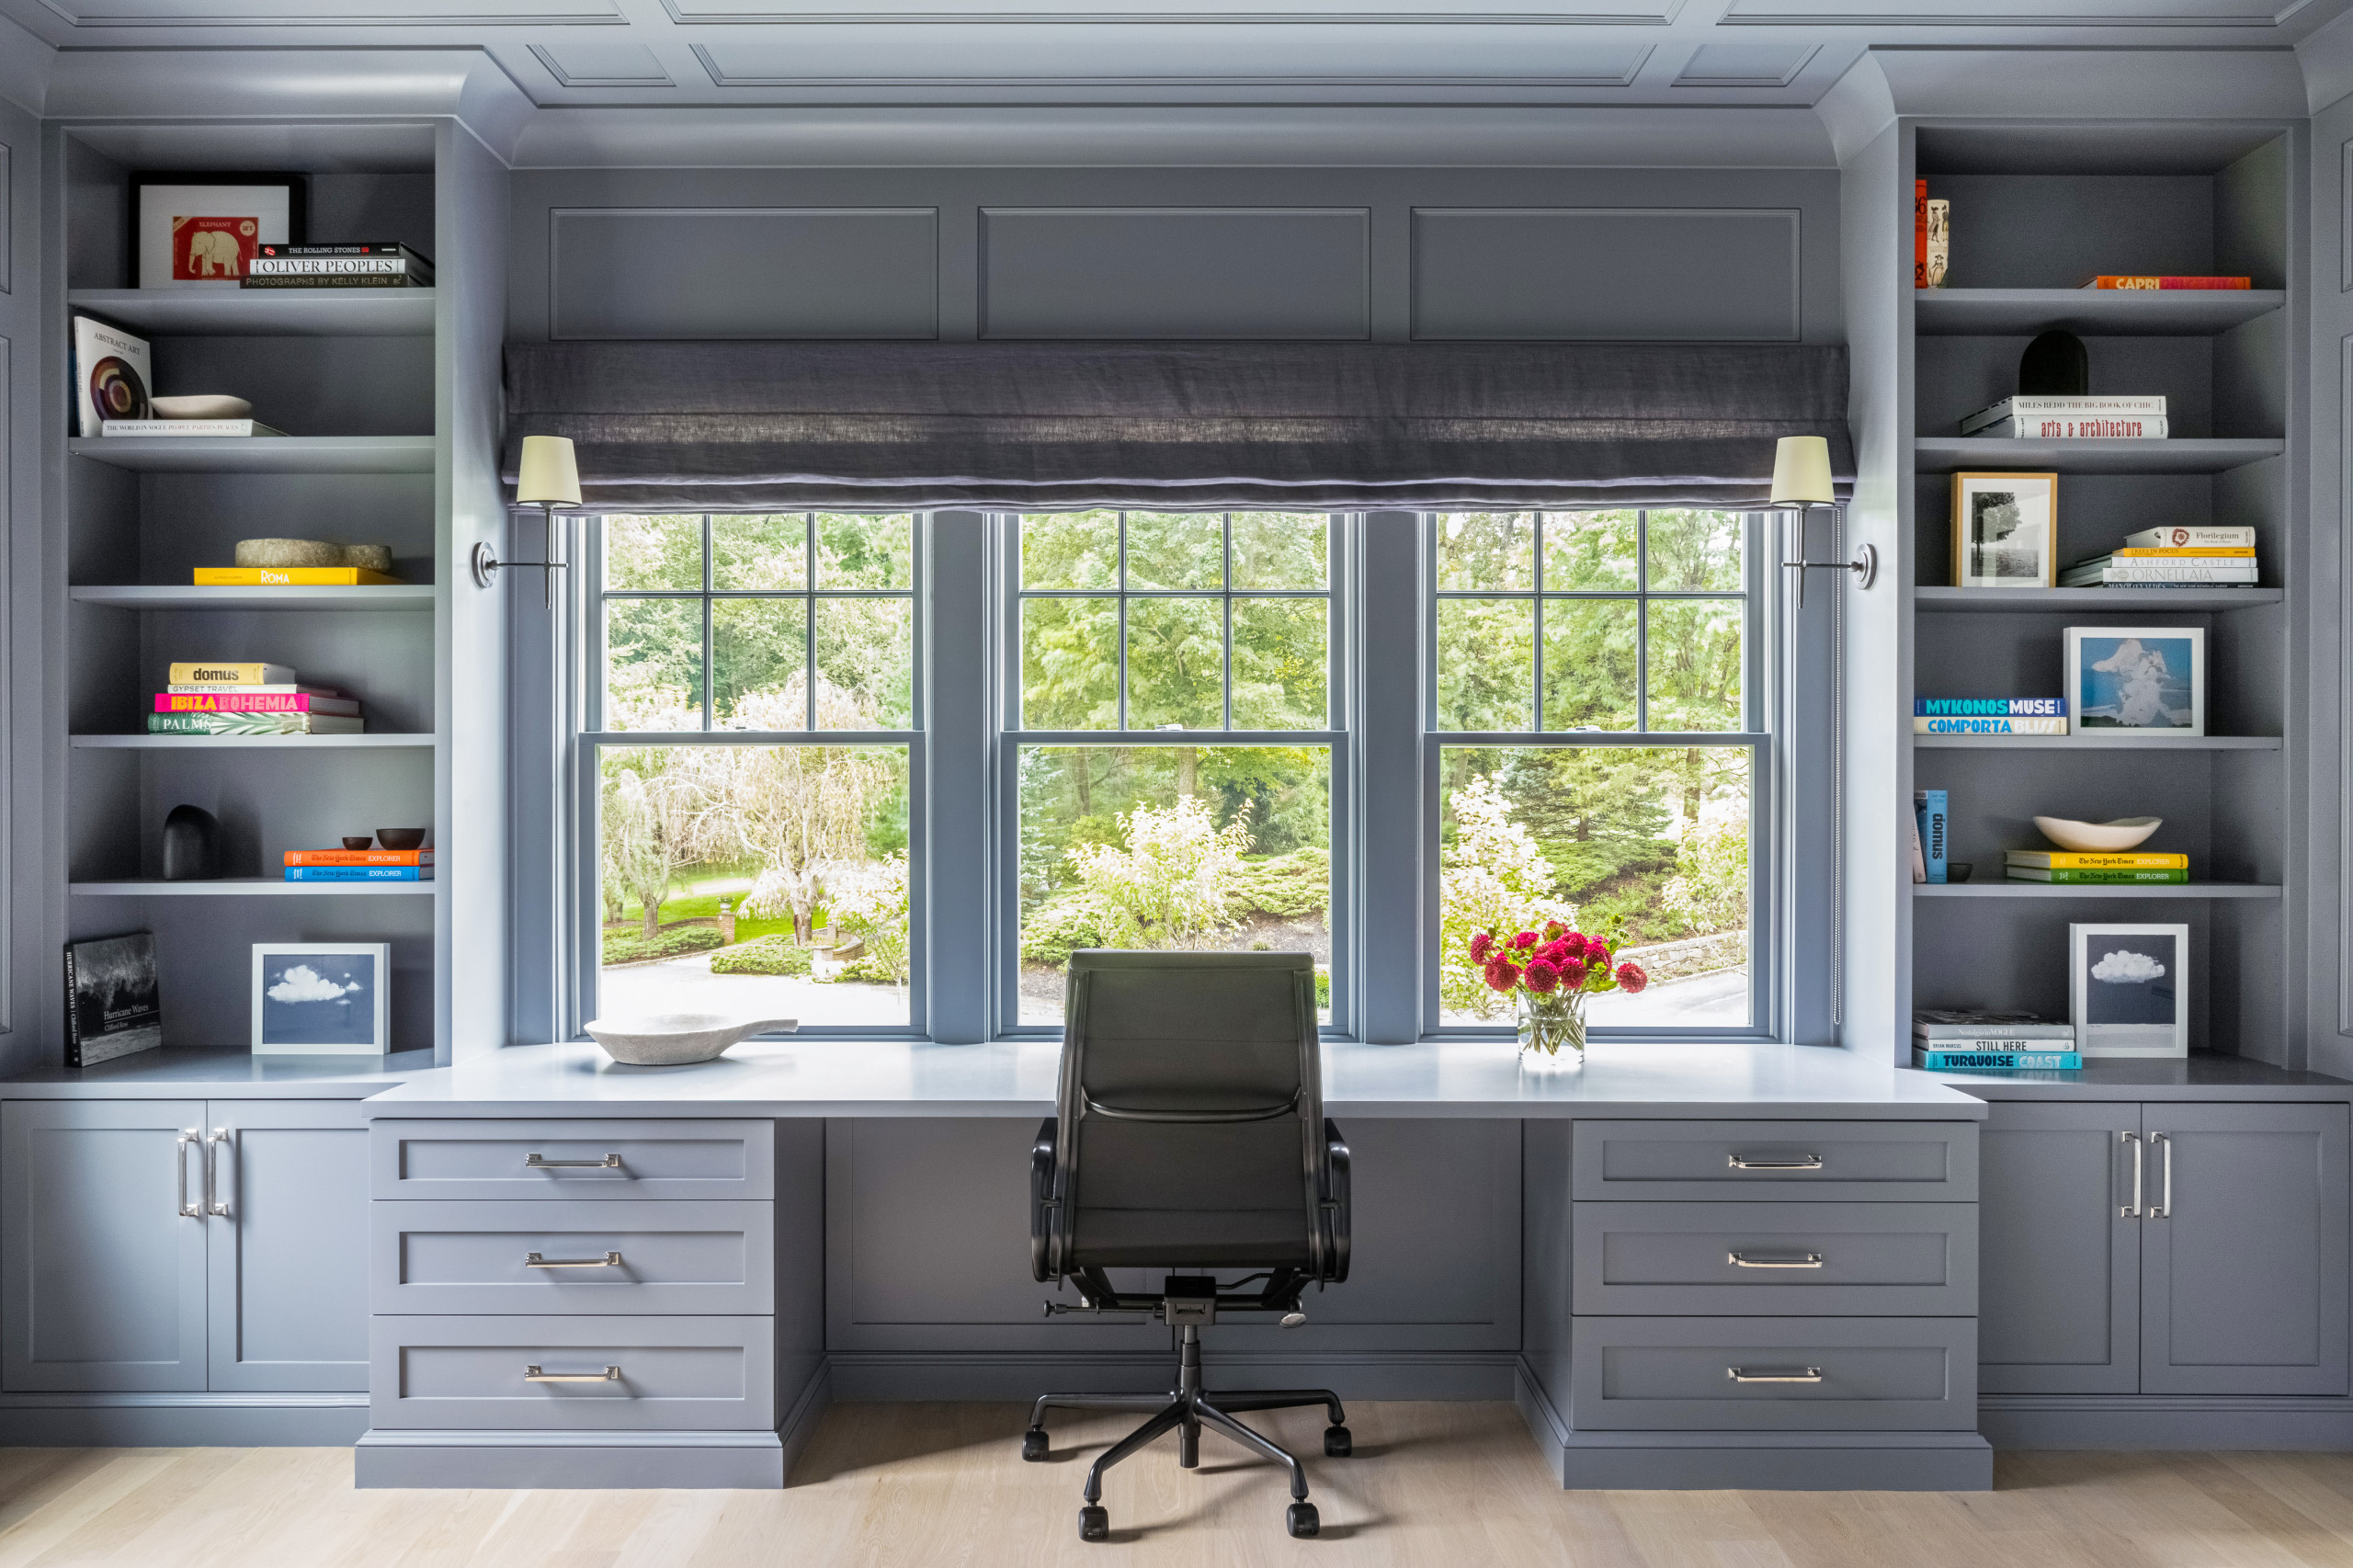 20 Beautiful Built In Desk Home Office Pictures & Ideas   October ...